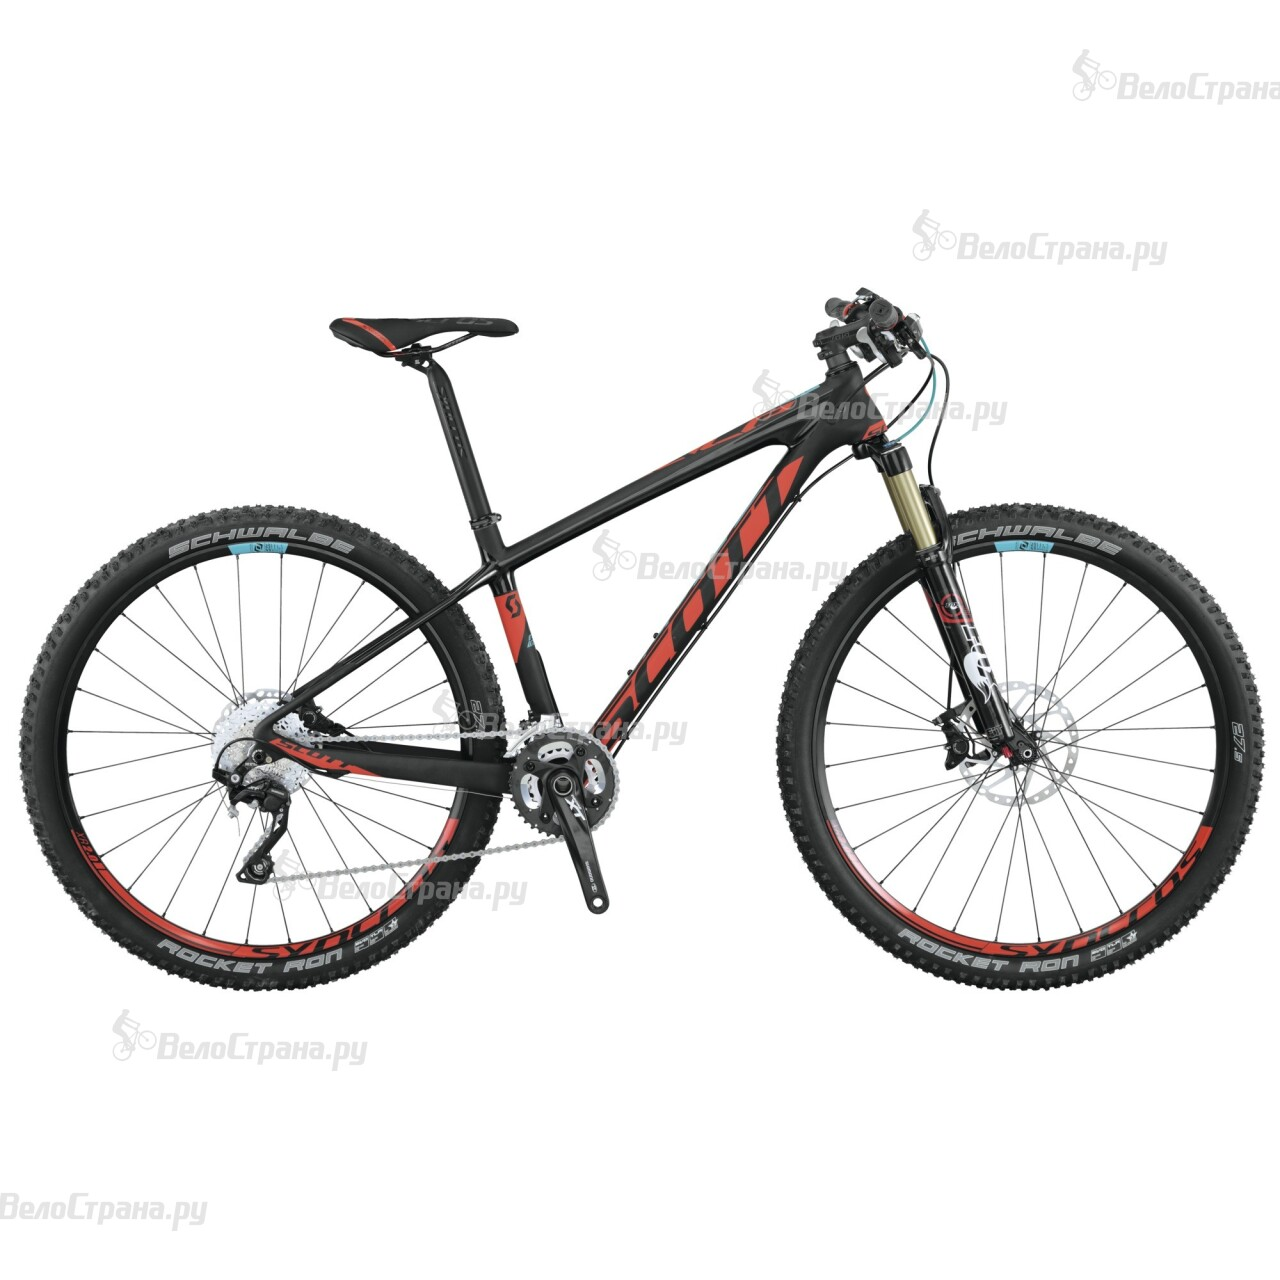 Велосипед Scott Contessa Spark 700 RC (2015) велосипед scott contessa genius 700 2015